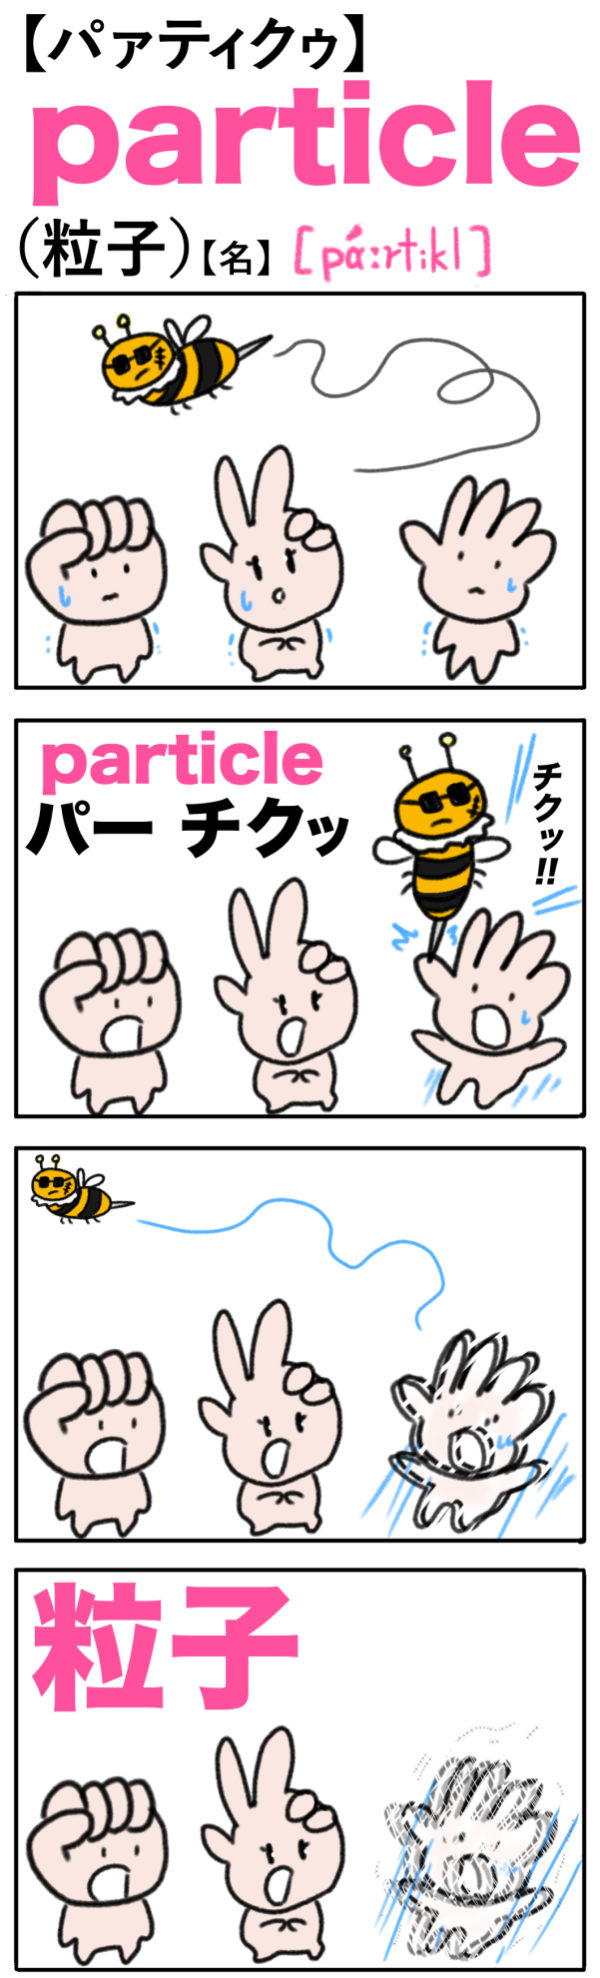 particle(粒子)の語呂合わせ英単語